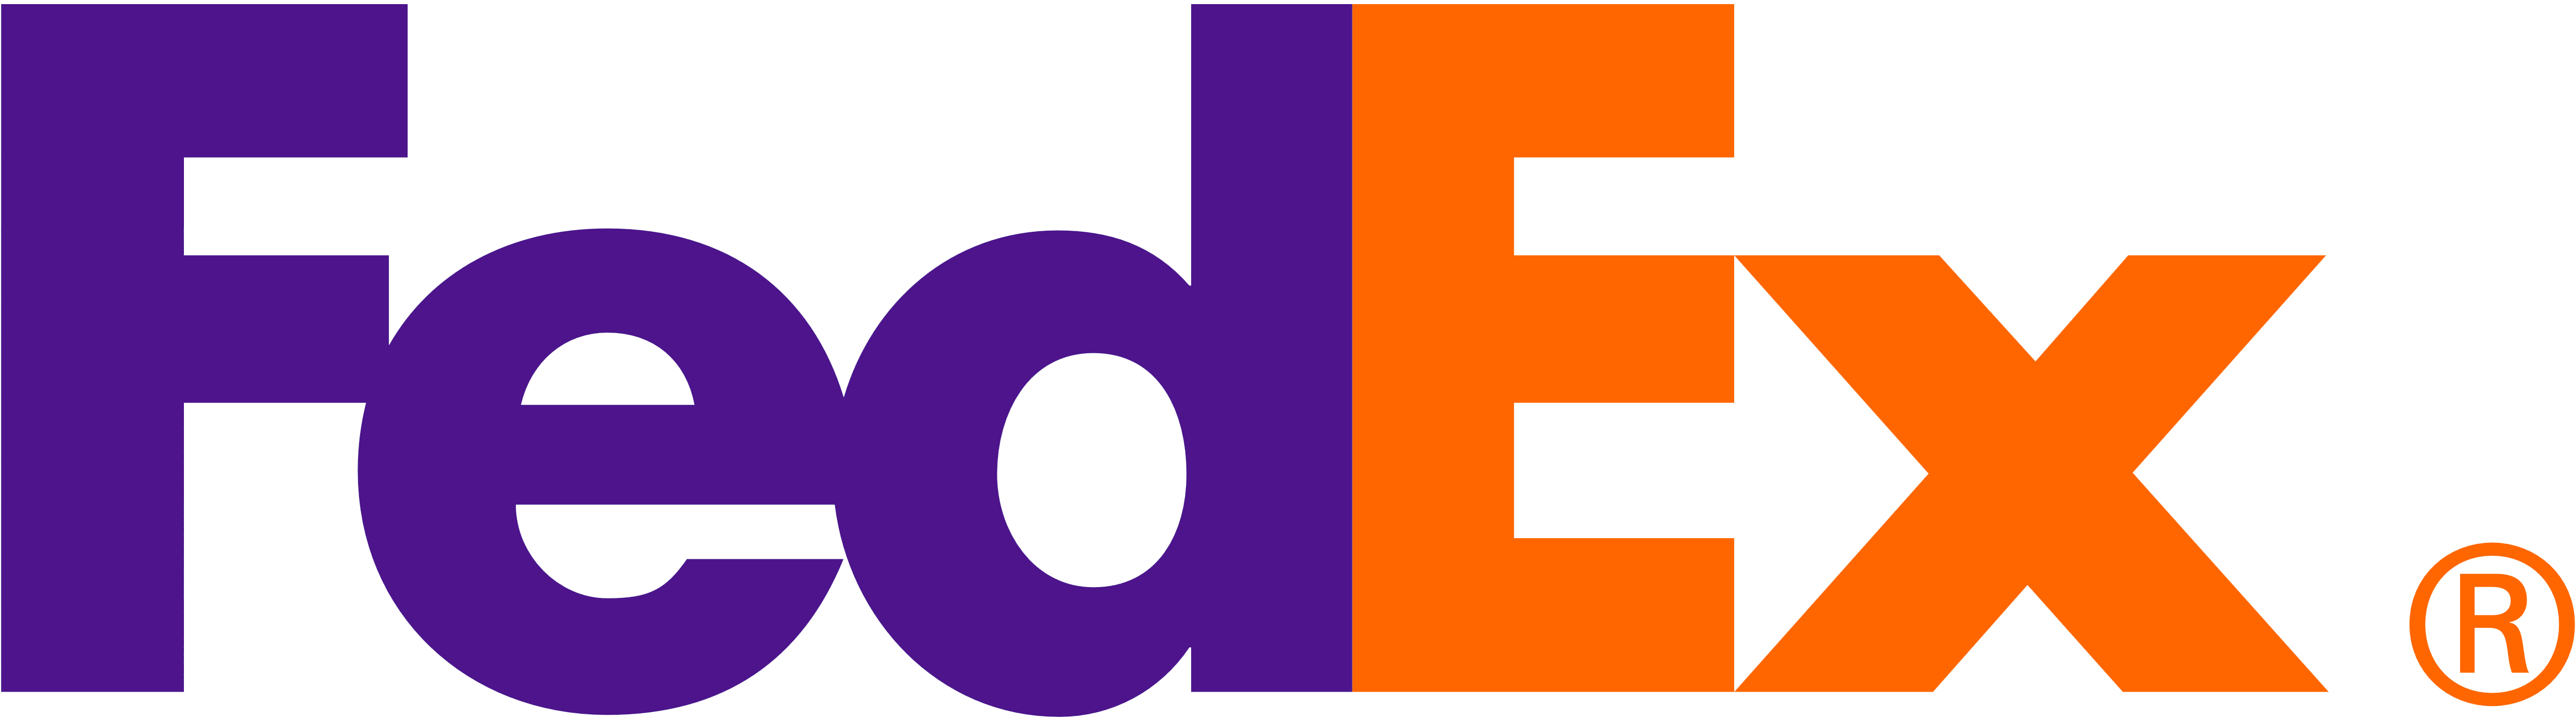 fedex logos download rh logos download com fedex ground logo change fedex ground logo download